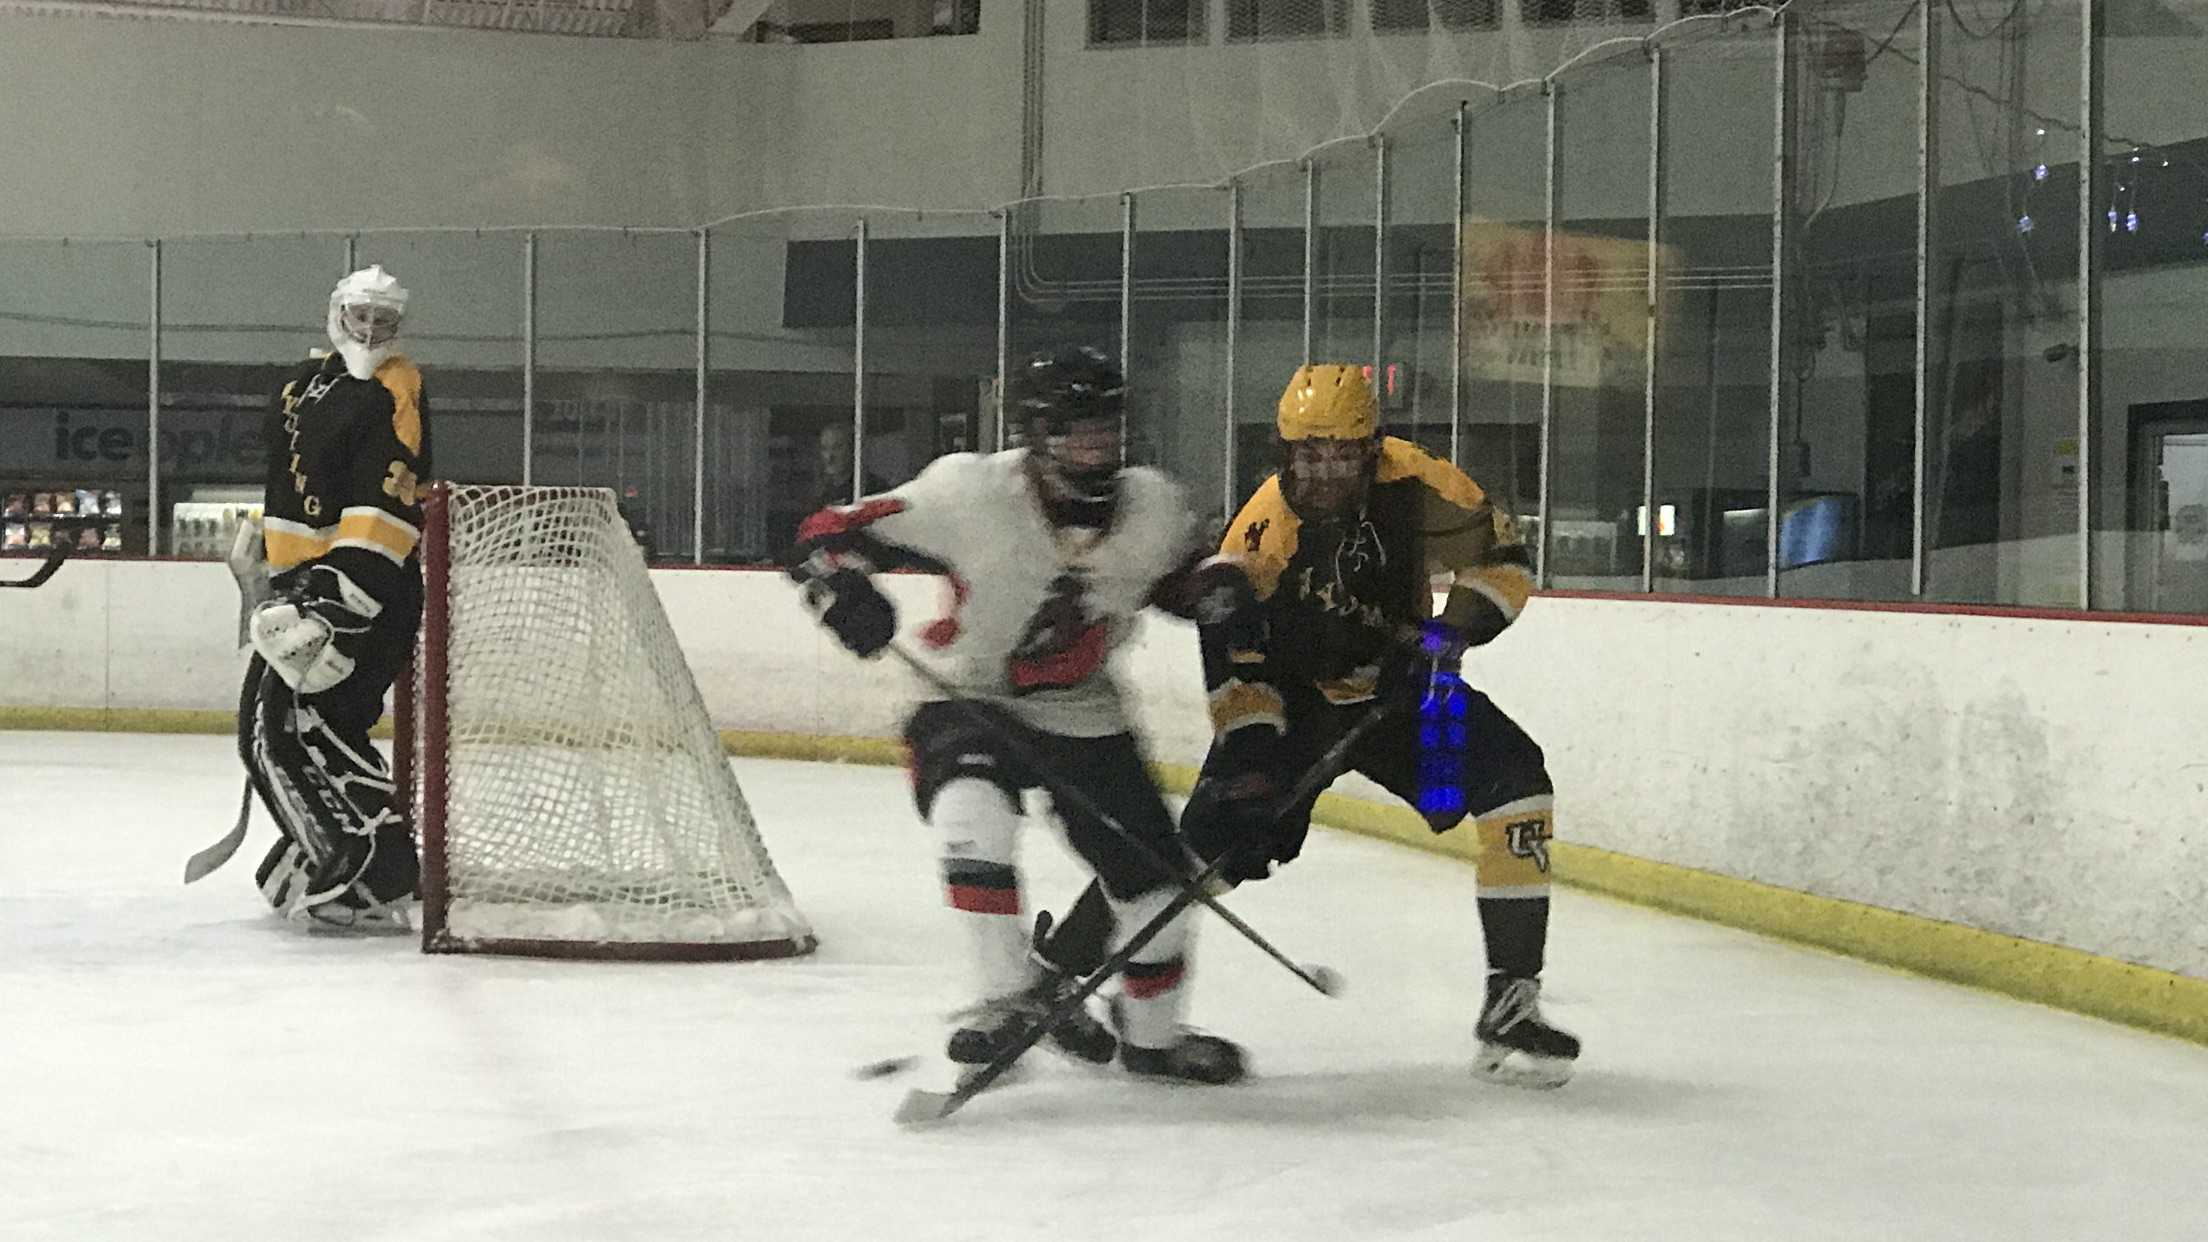 Two ice hockey players fight for the puck.